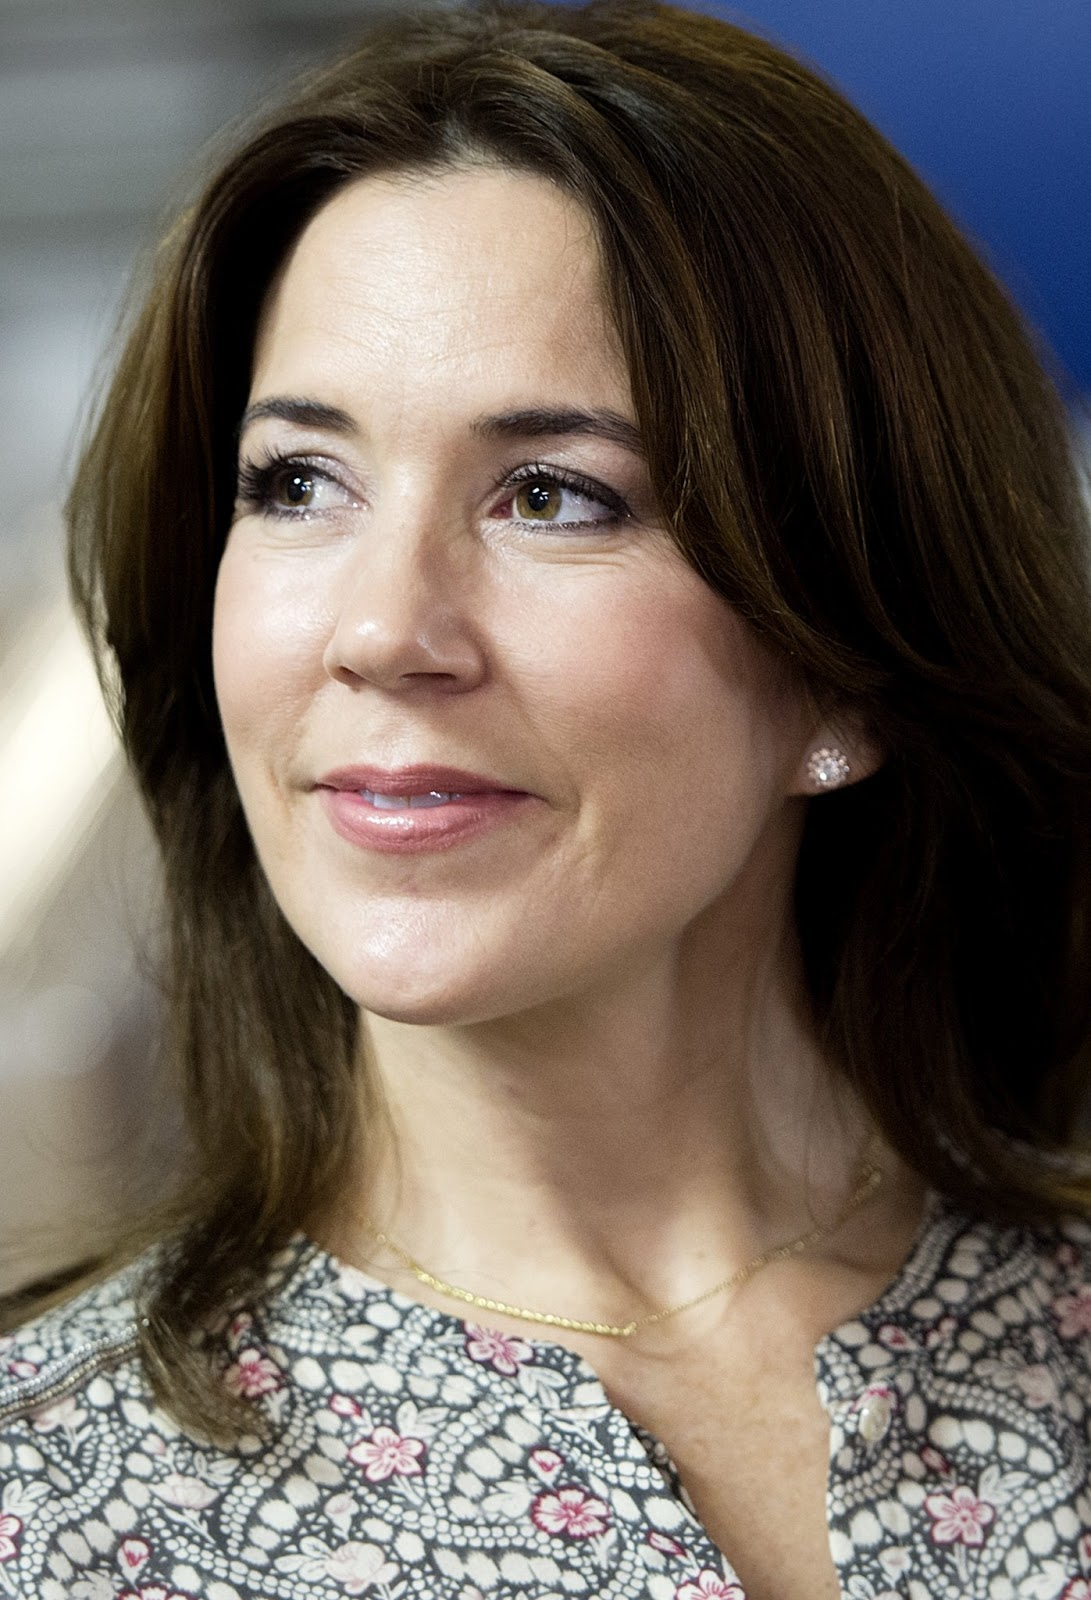 Princess Mary in South Africa 2-5 November 2014 - Day 1 ...